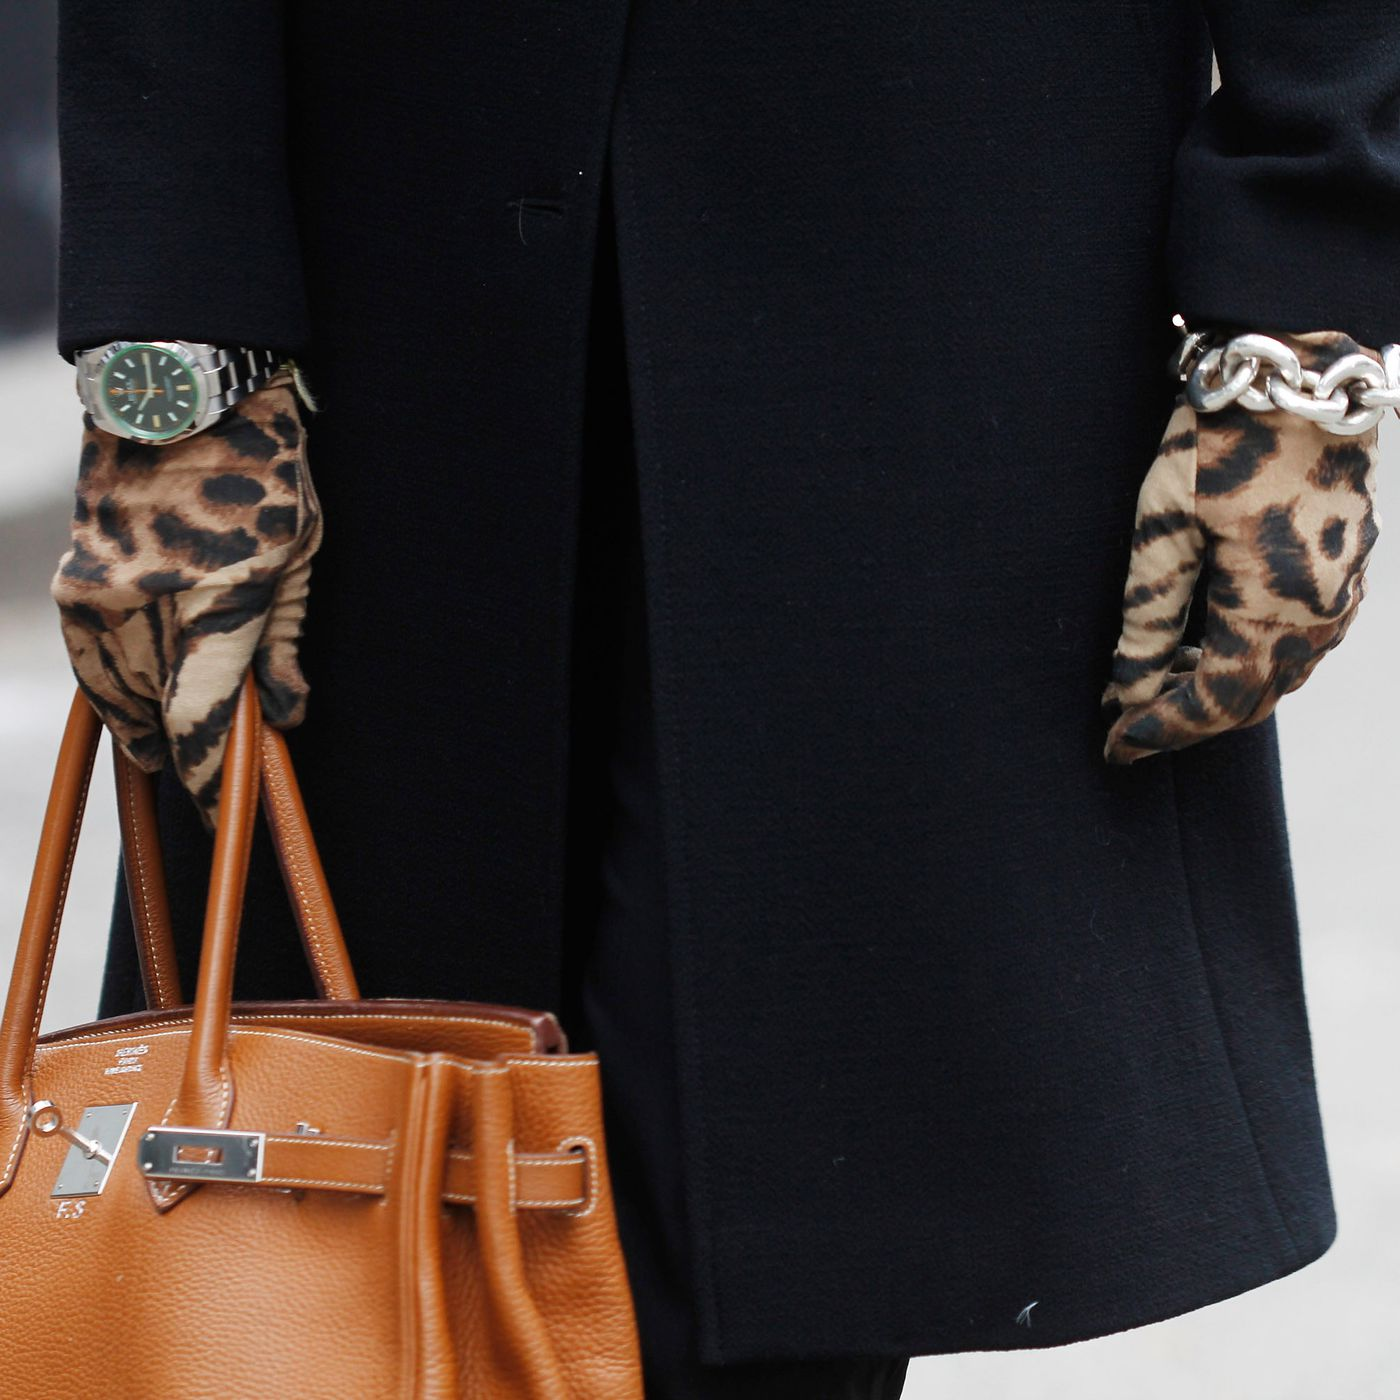 dfcc8d924ecdf6 Hermès Birkin Owners Reveal Crazy Tips for Buying the Bag - Vox